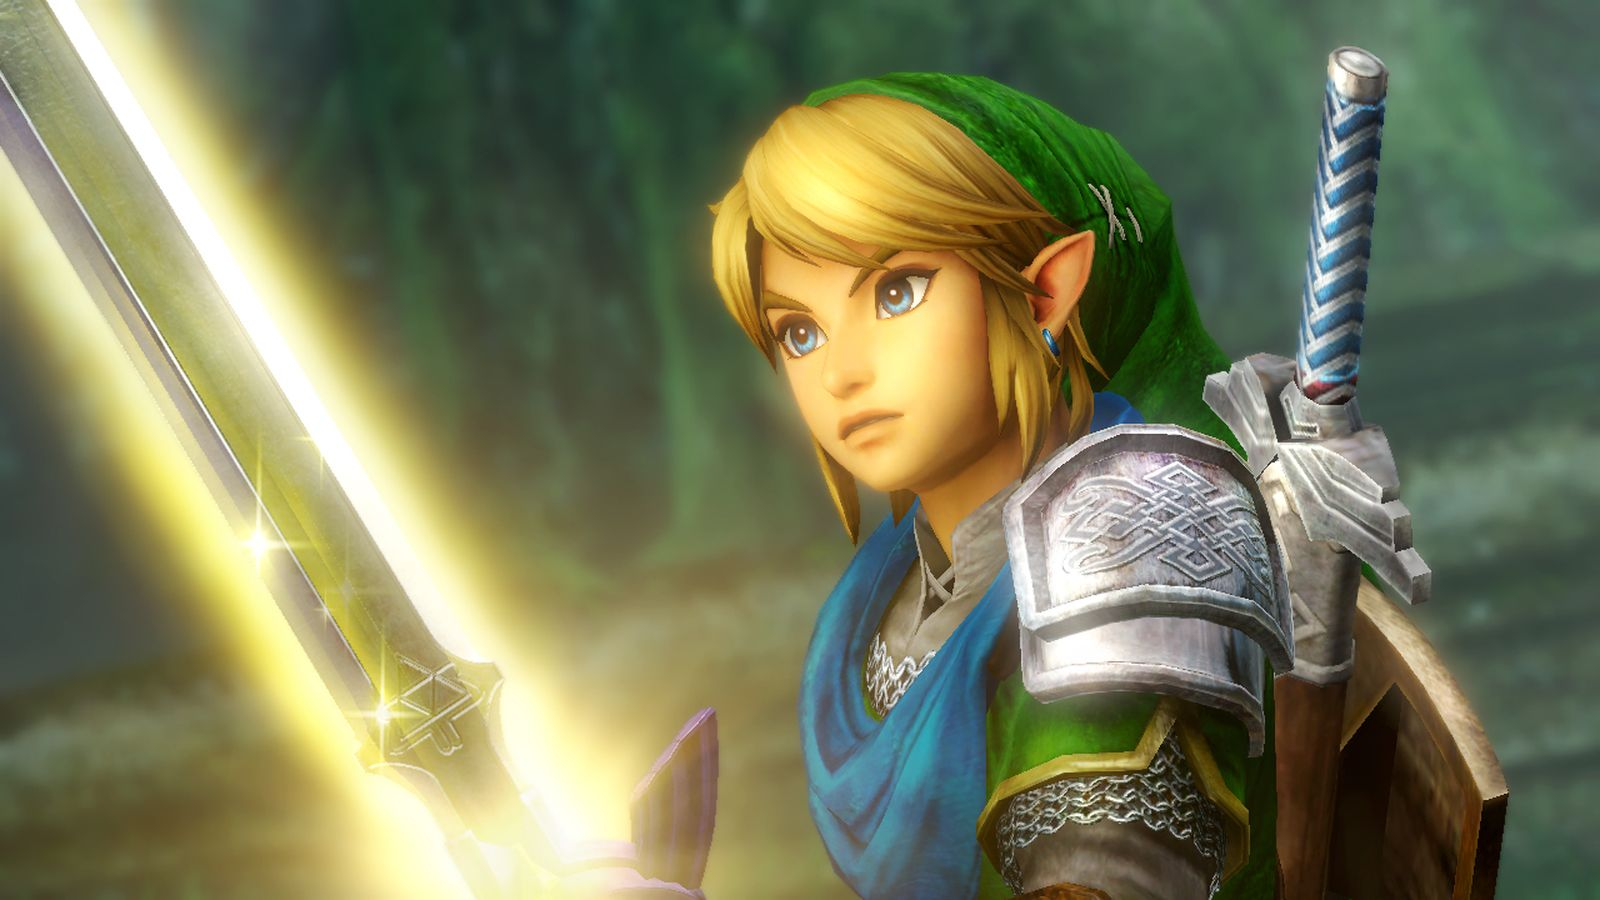 Hyrule Warriors Backgrounds on Wallpapers Vista